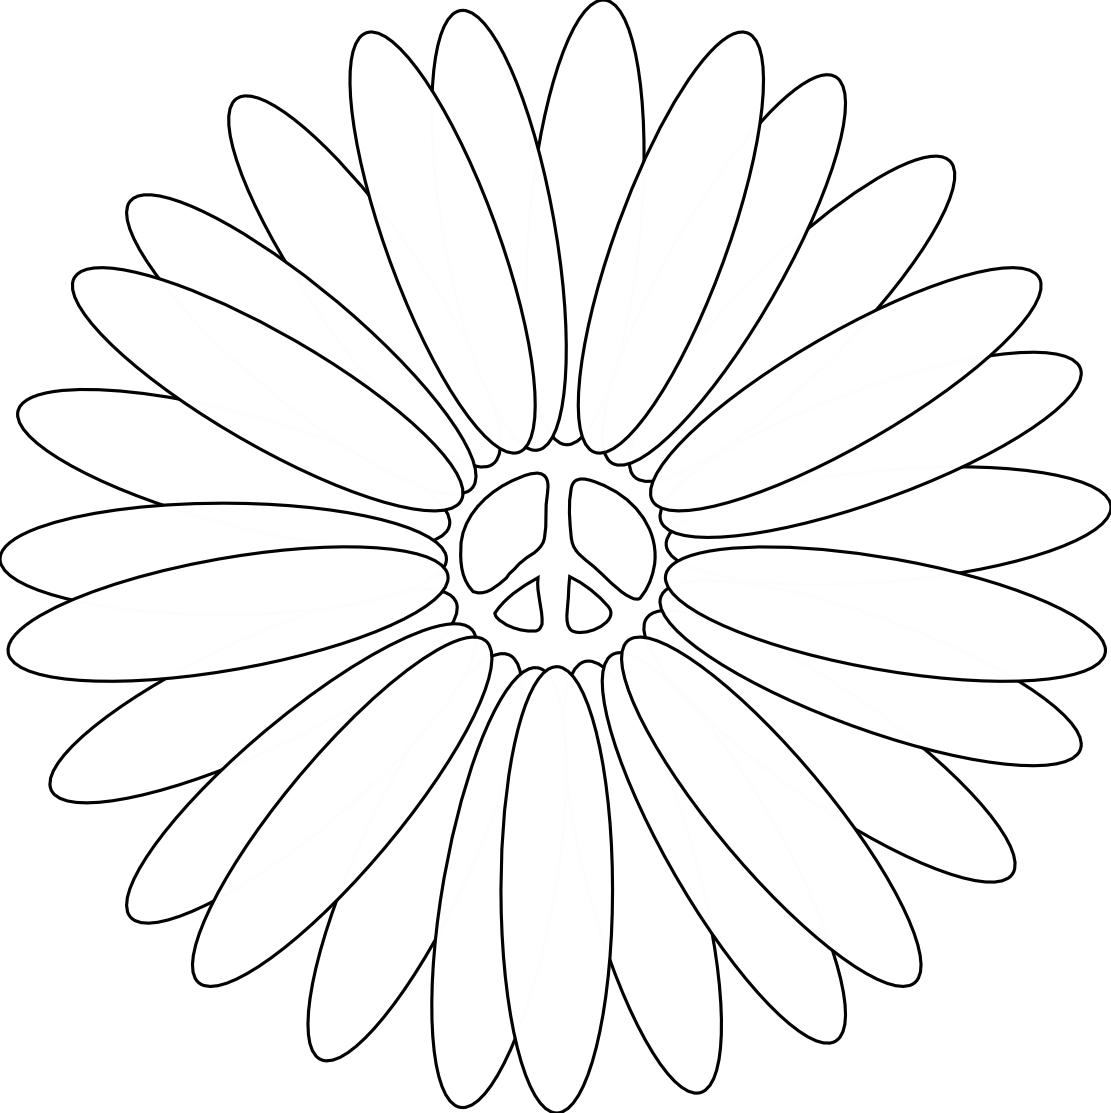 Free Printable Peace Sign Coloring Pages (50 Images) - Class Teacher